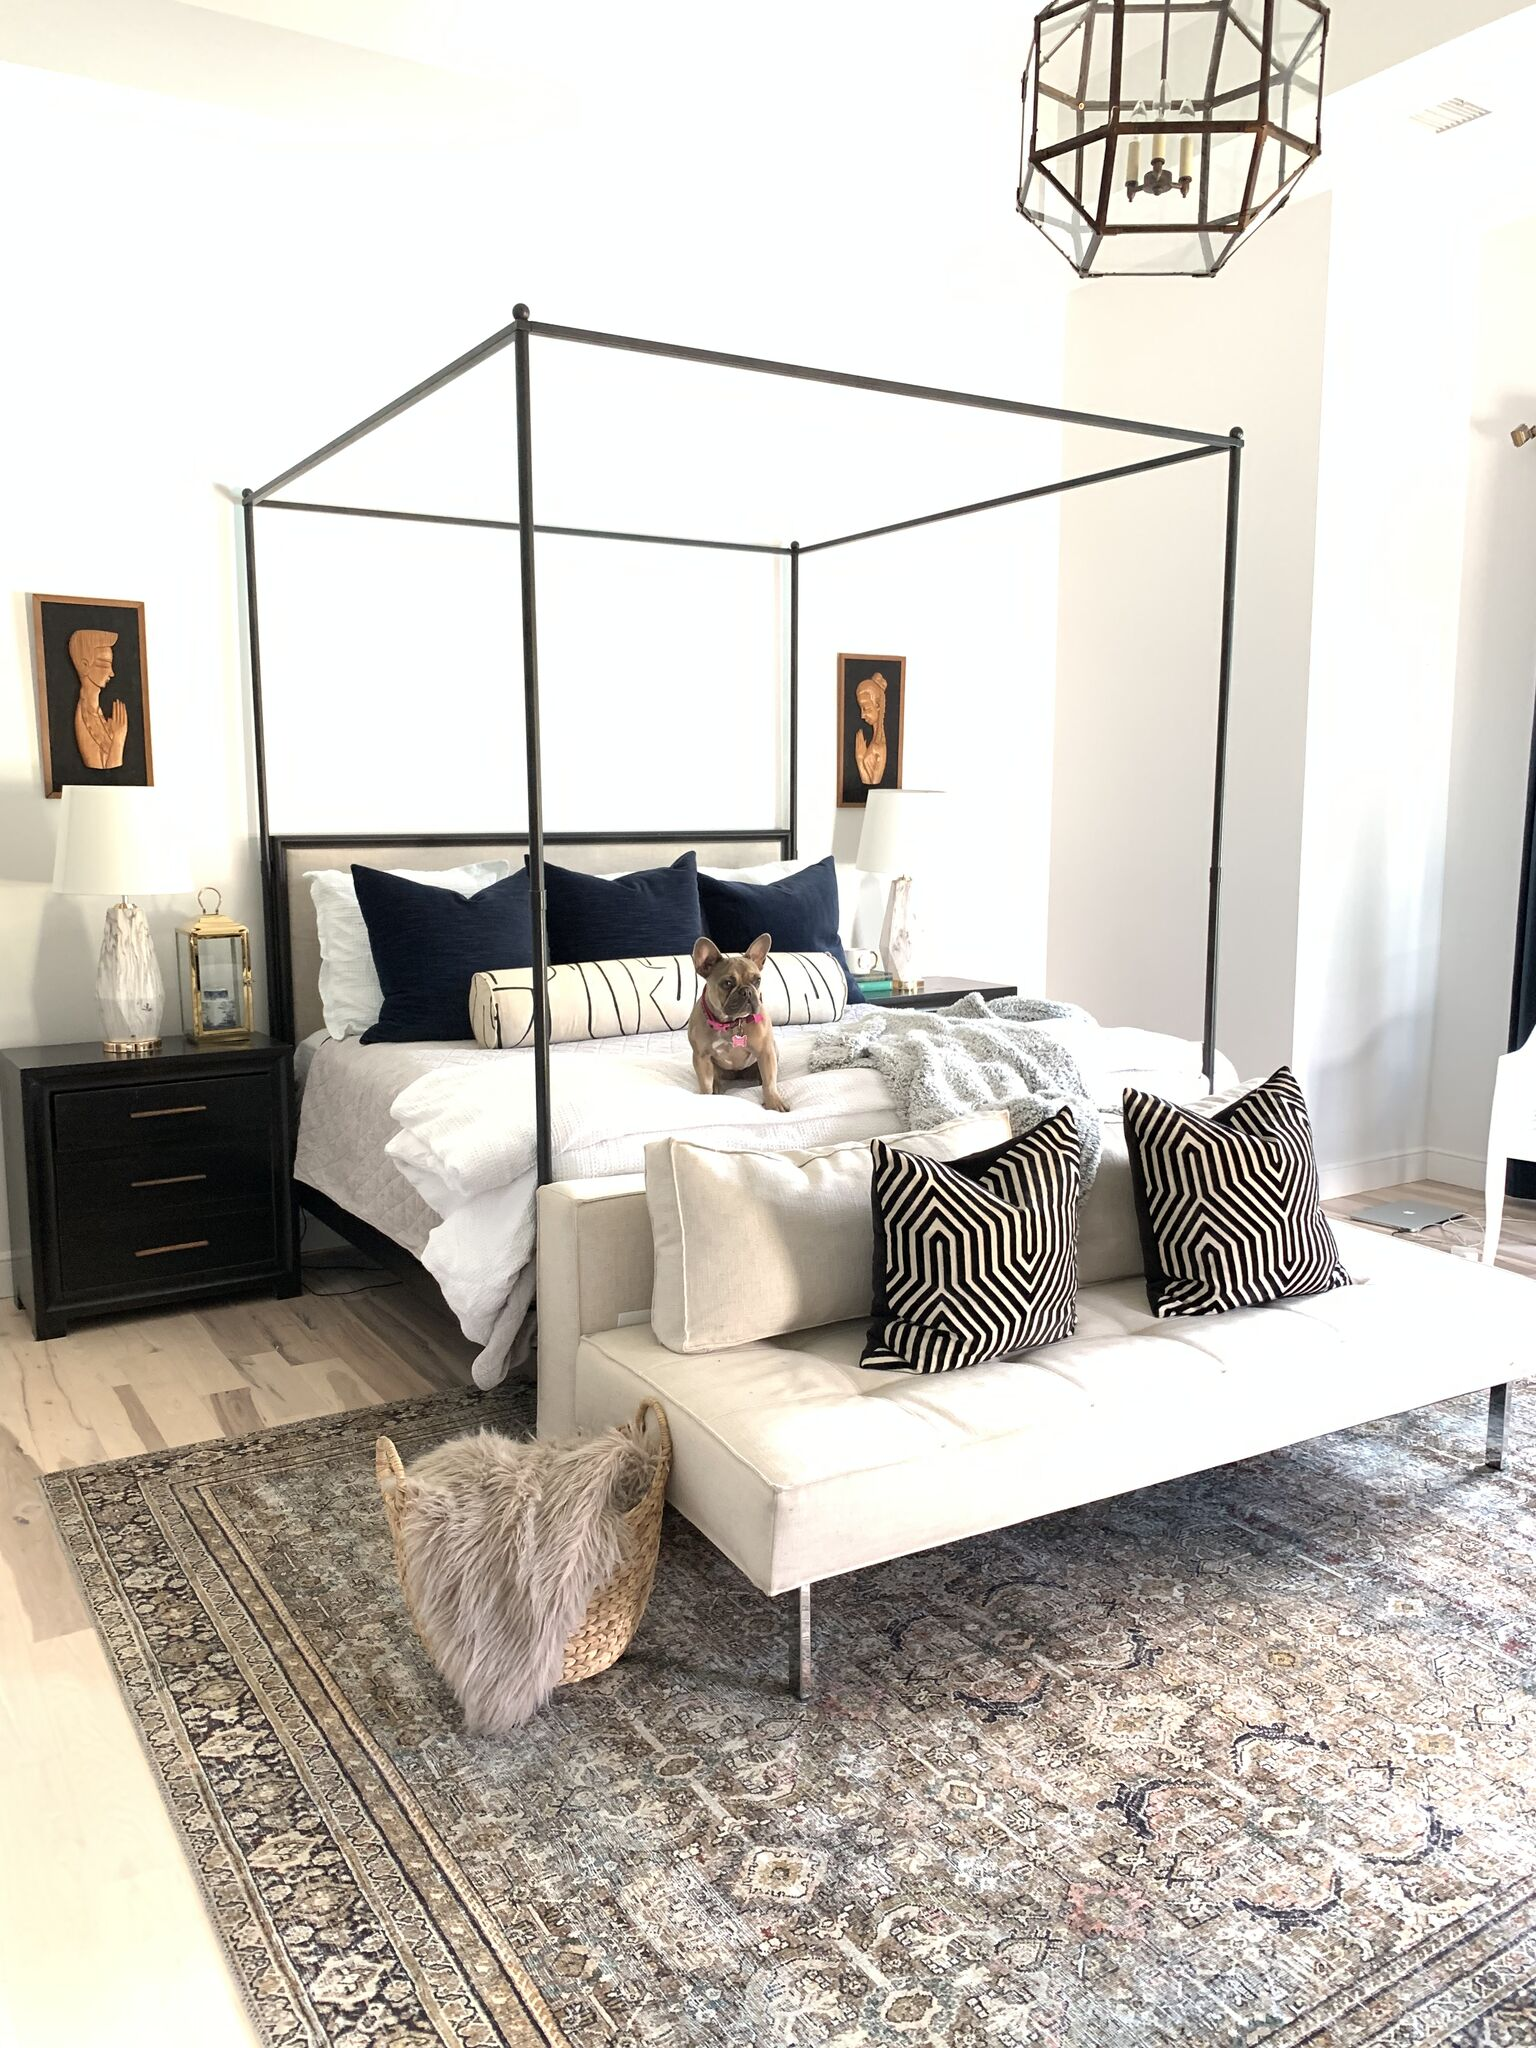 How to Refresh Your Rugs for Spring Coastal Master Bedroom Design from WalMart Home large seagrass basket